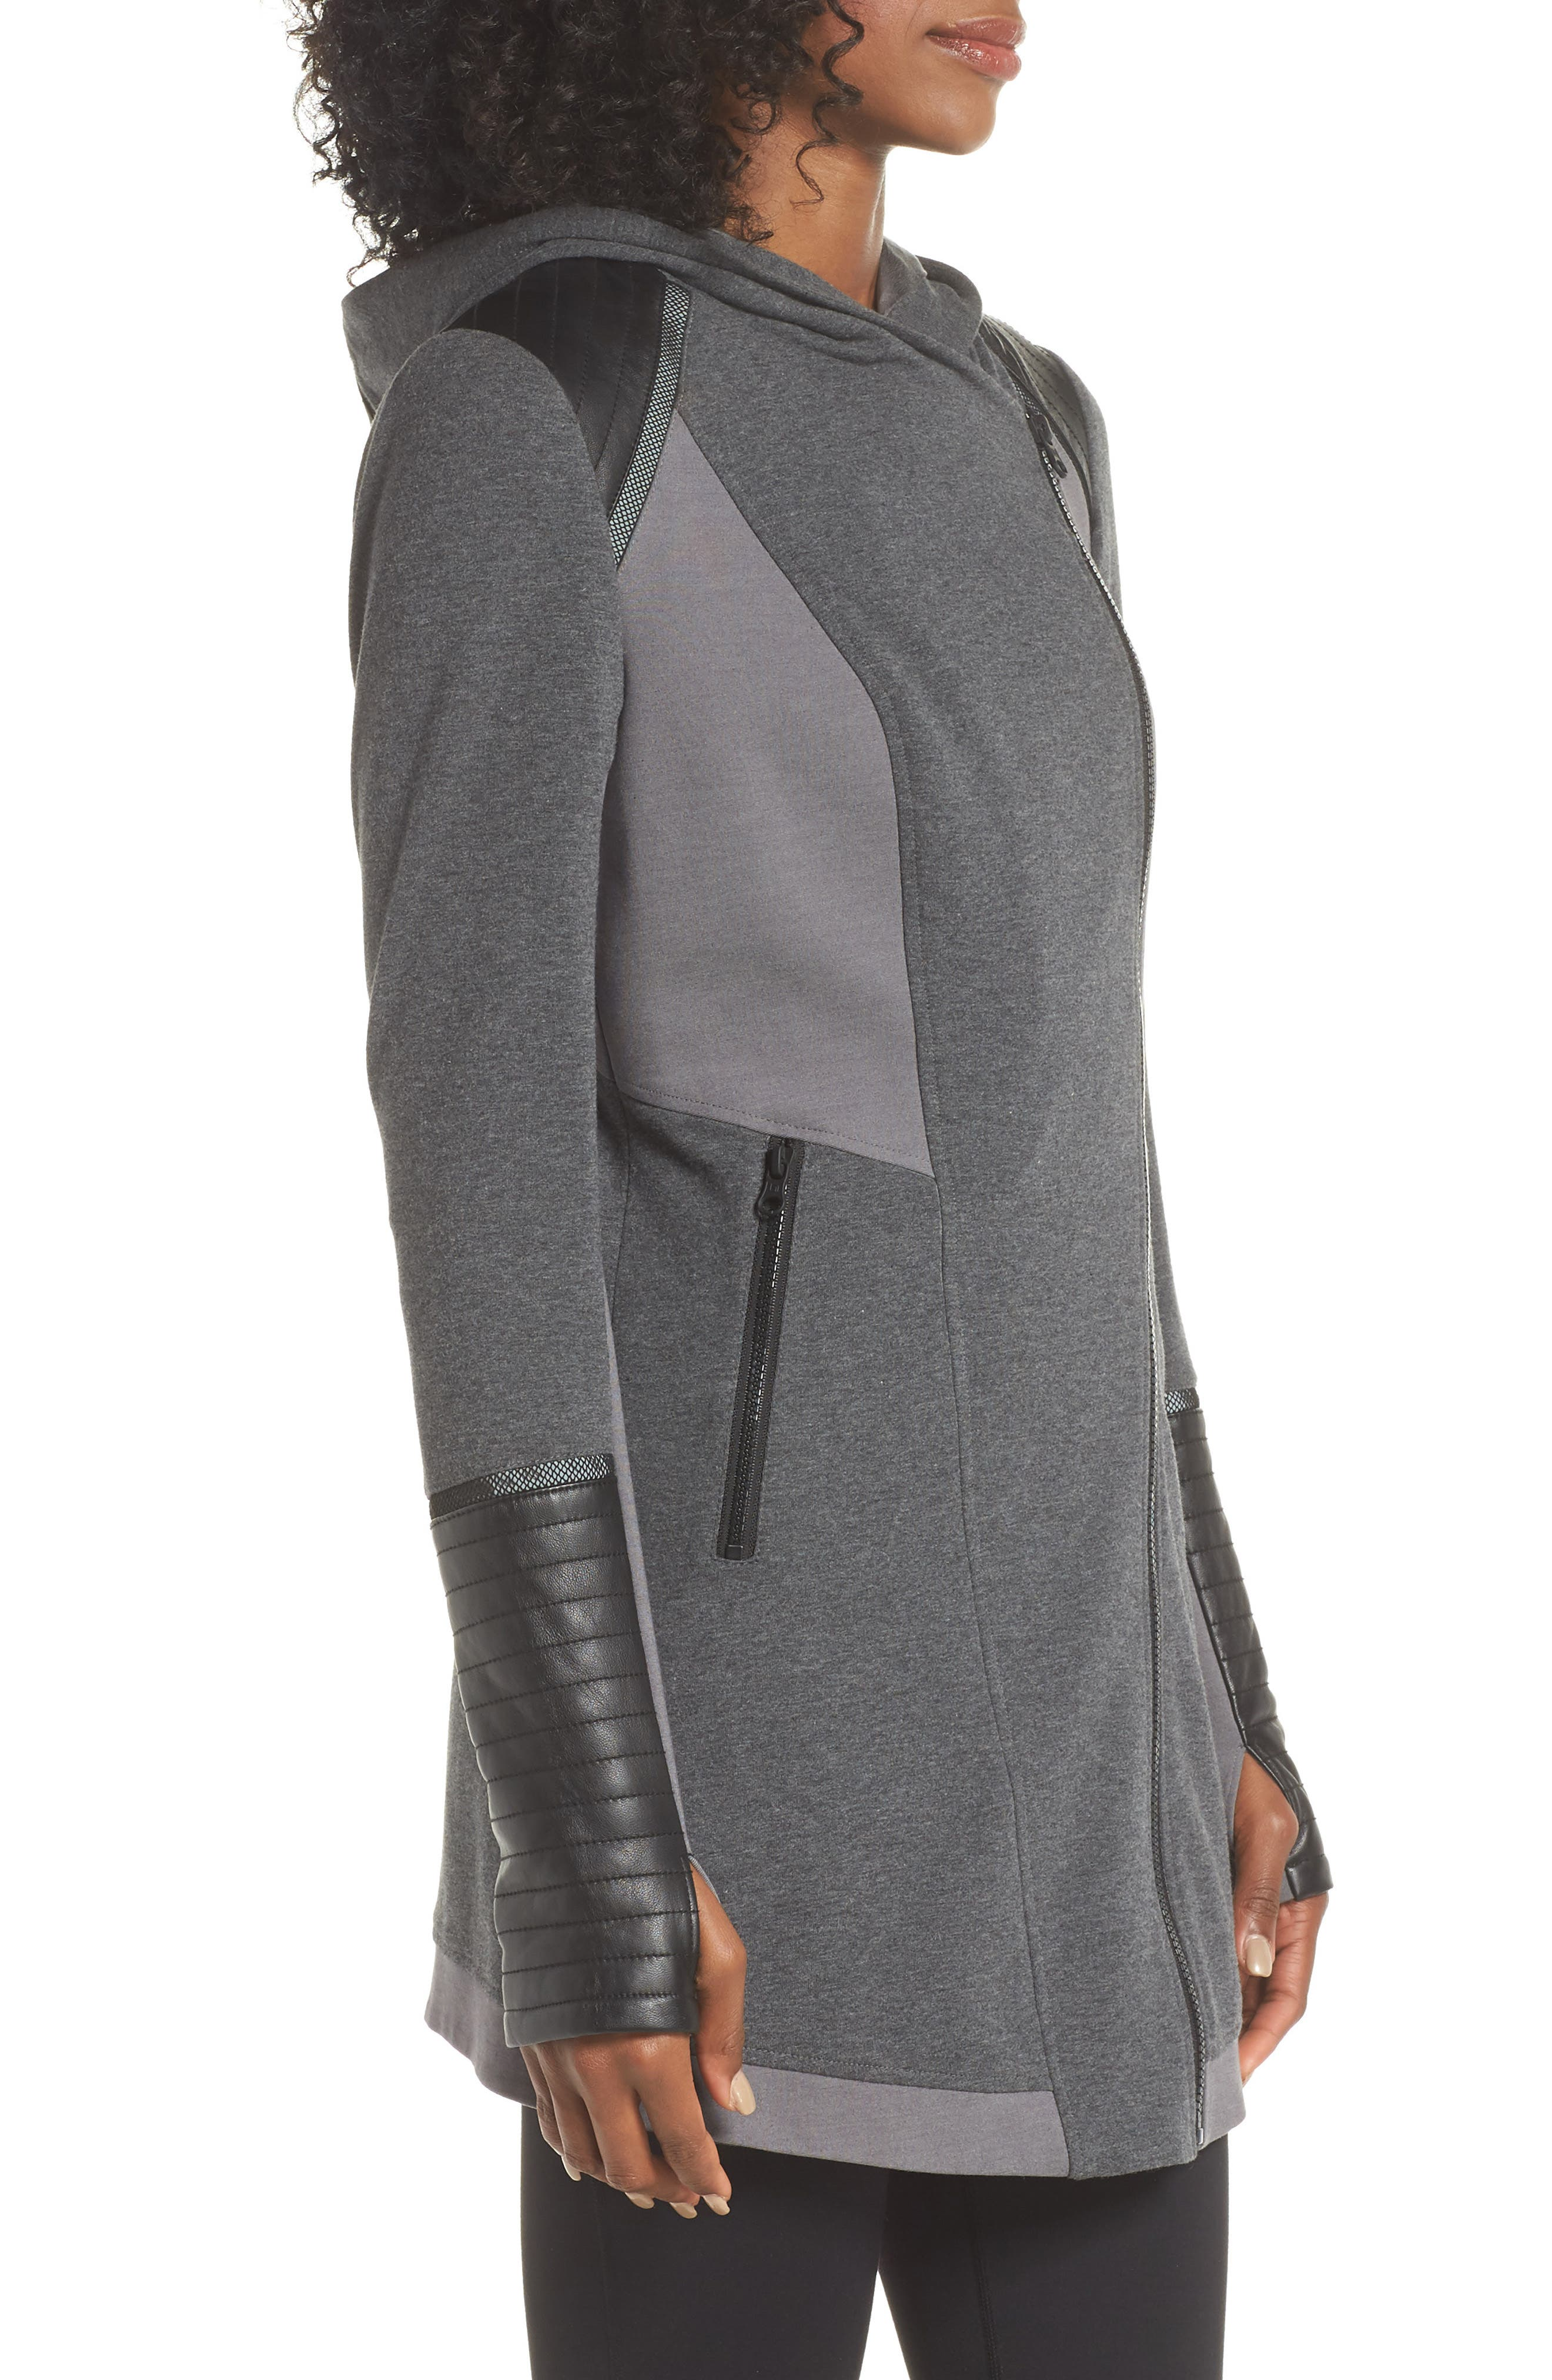 BLANC NOIR, Traveller Mesh Inset Jacket, Alternate thumbnail 2, color, CHARCOAL